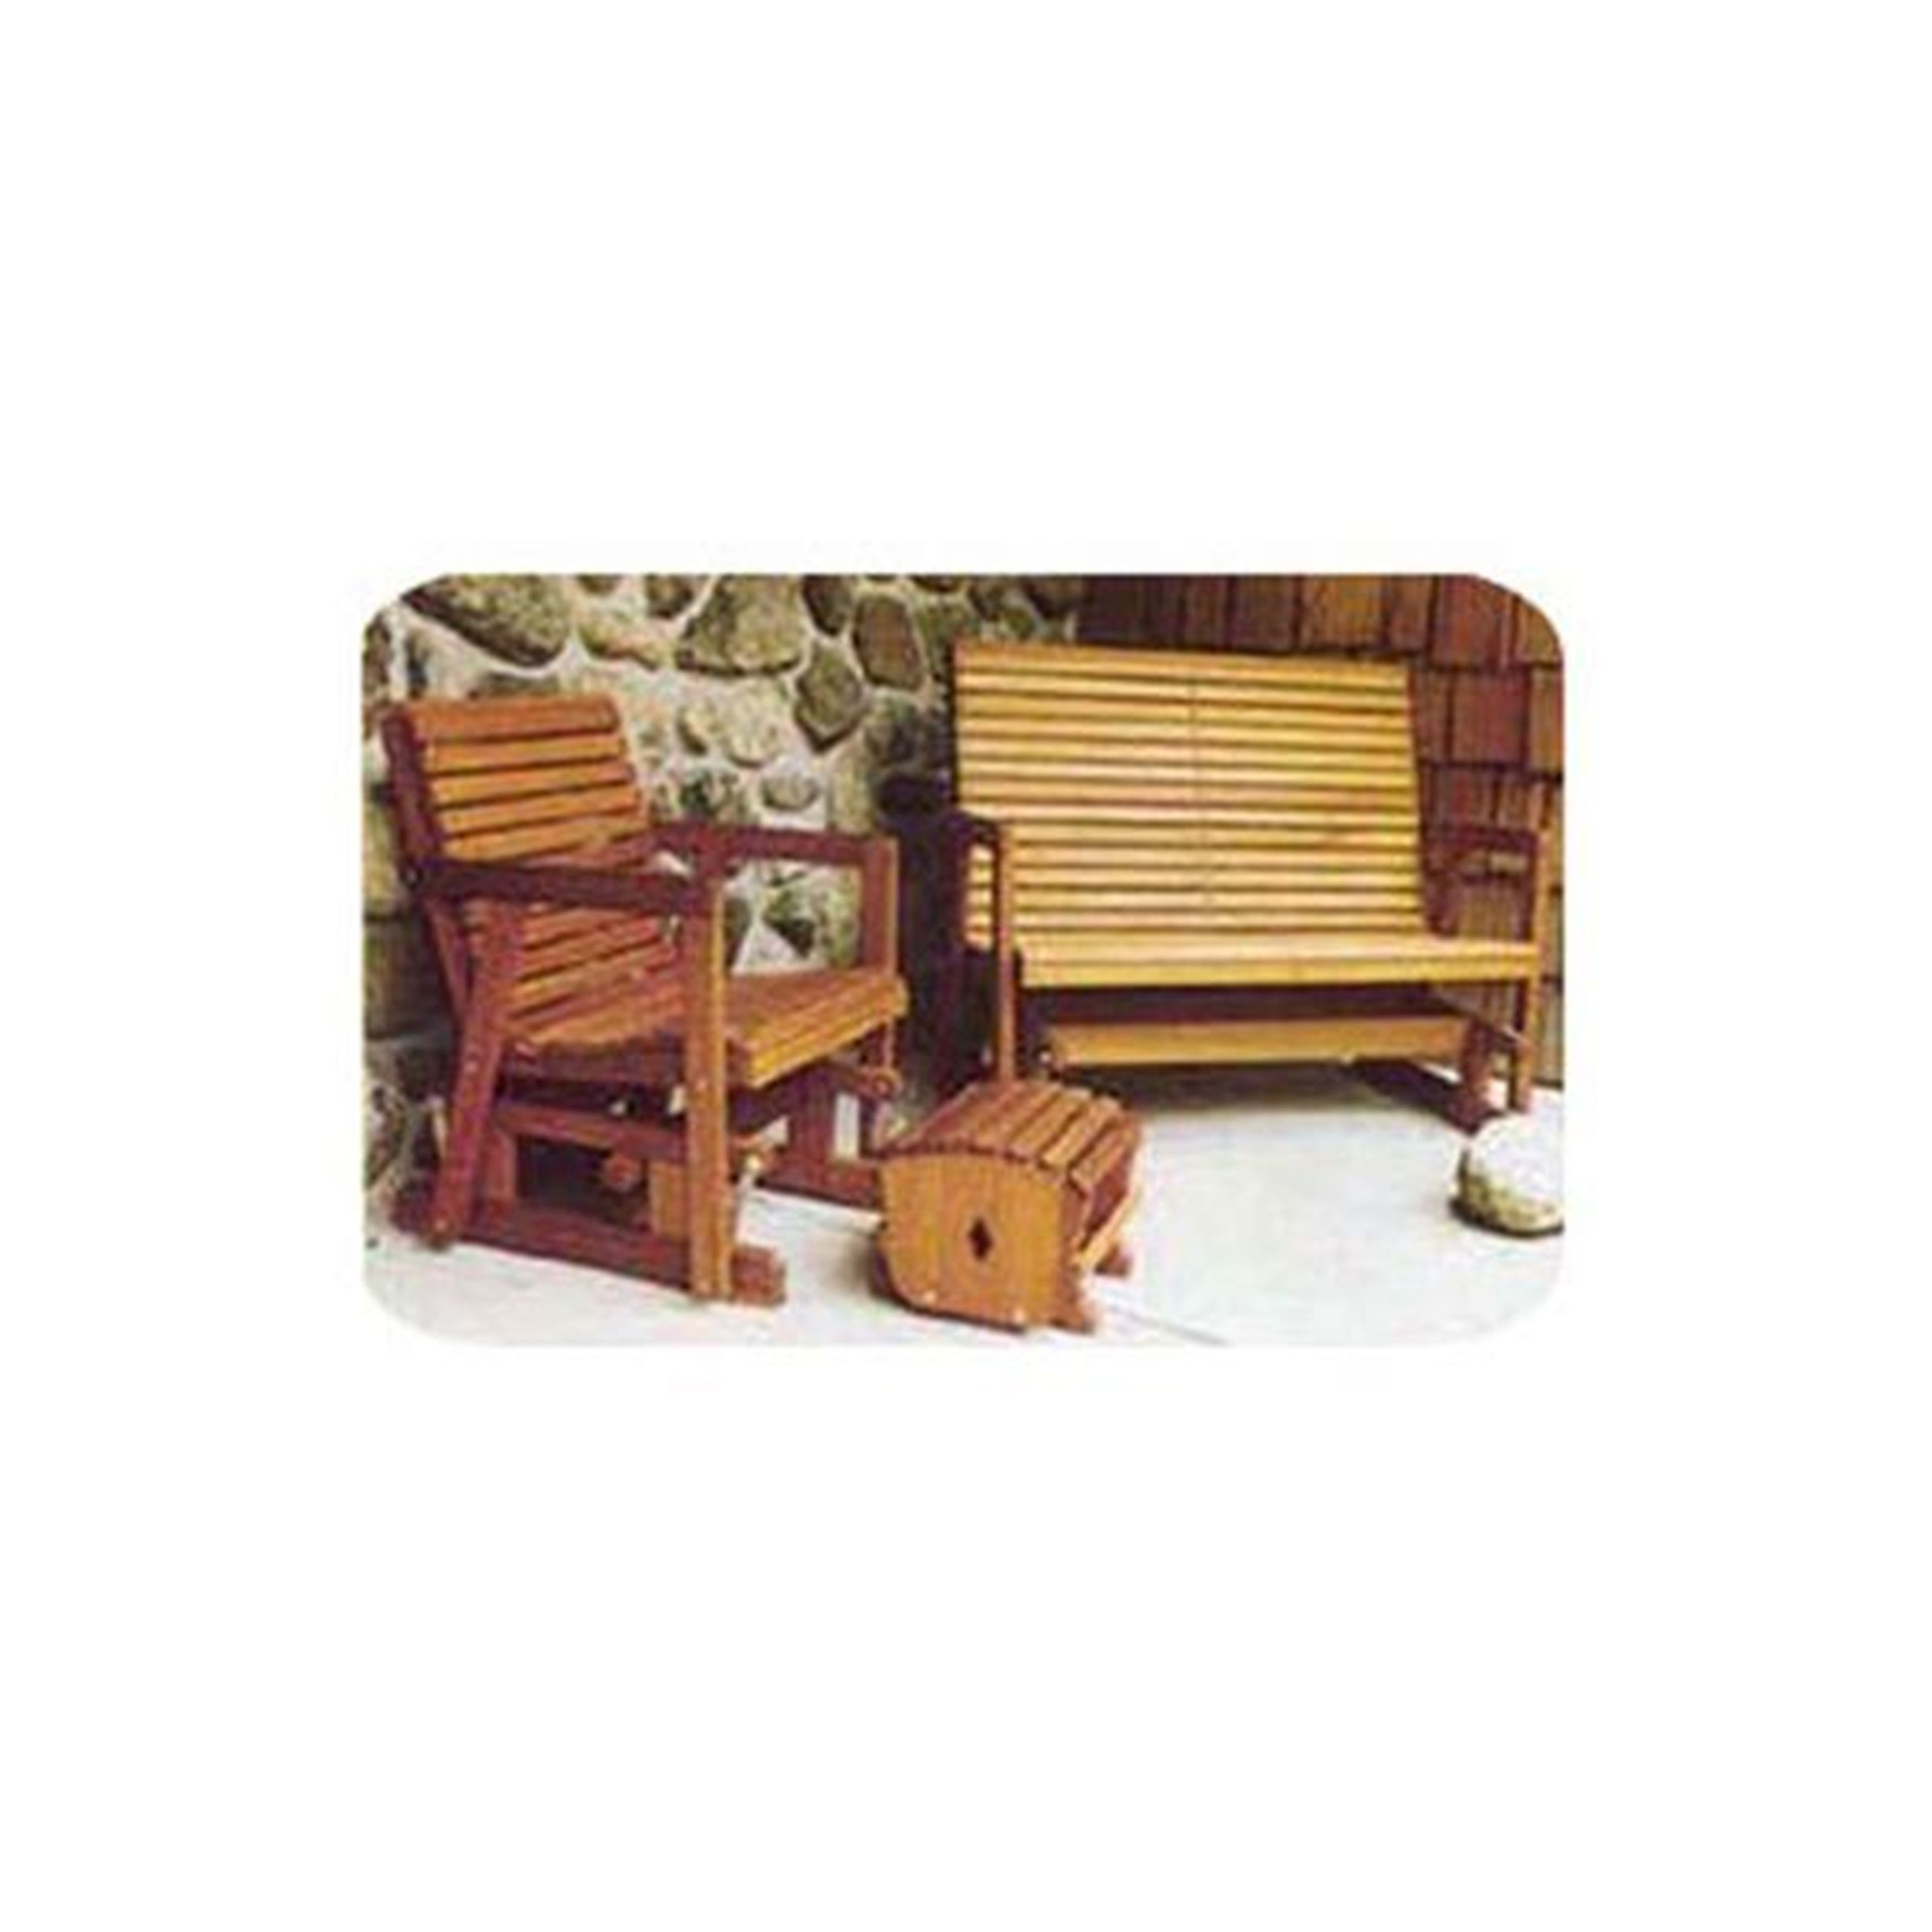 Woodworking Project Paper Plan to Build Glider Bench and Chair #woodworkingprojectschair